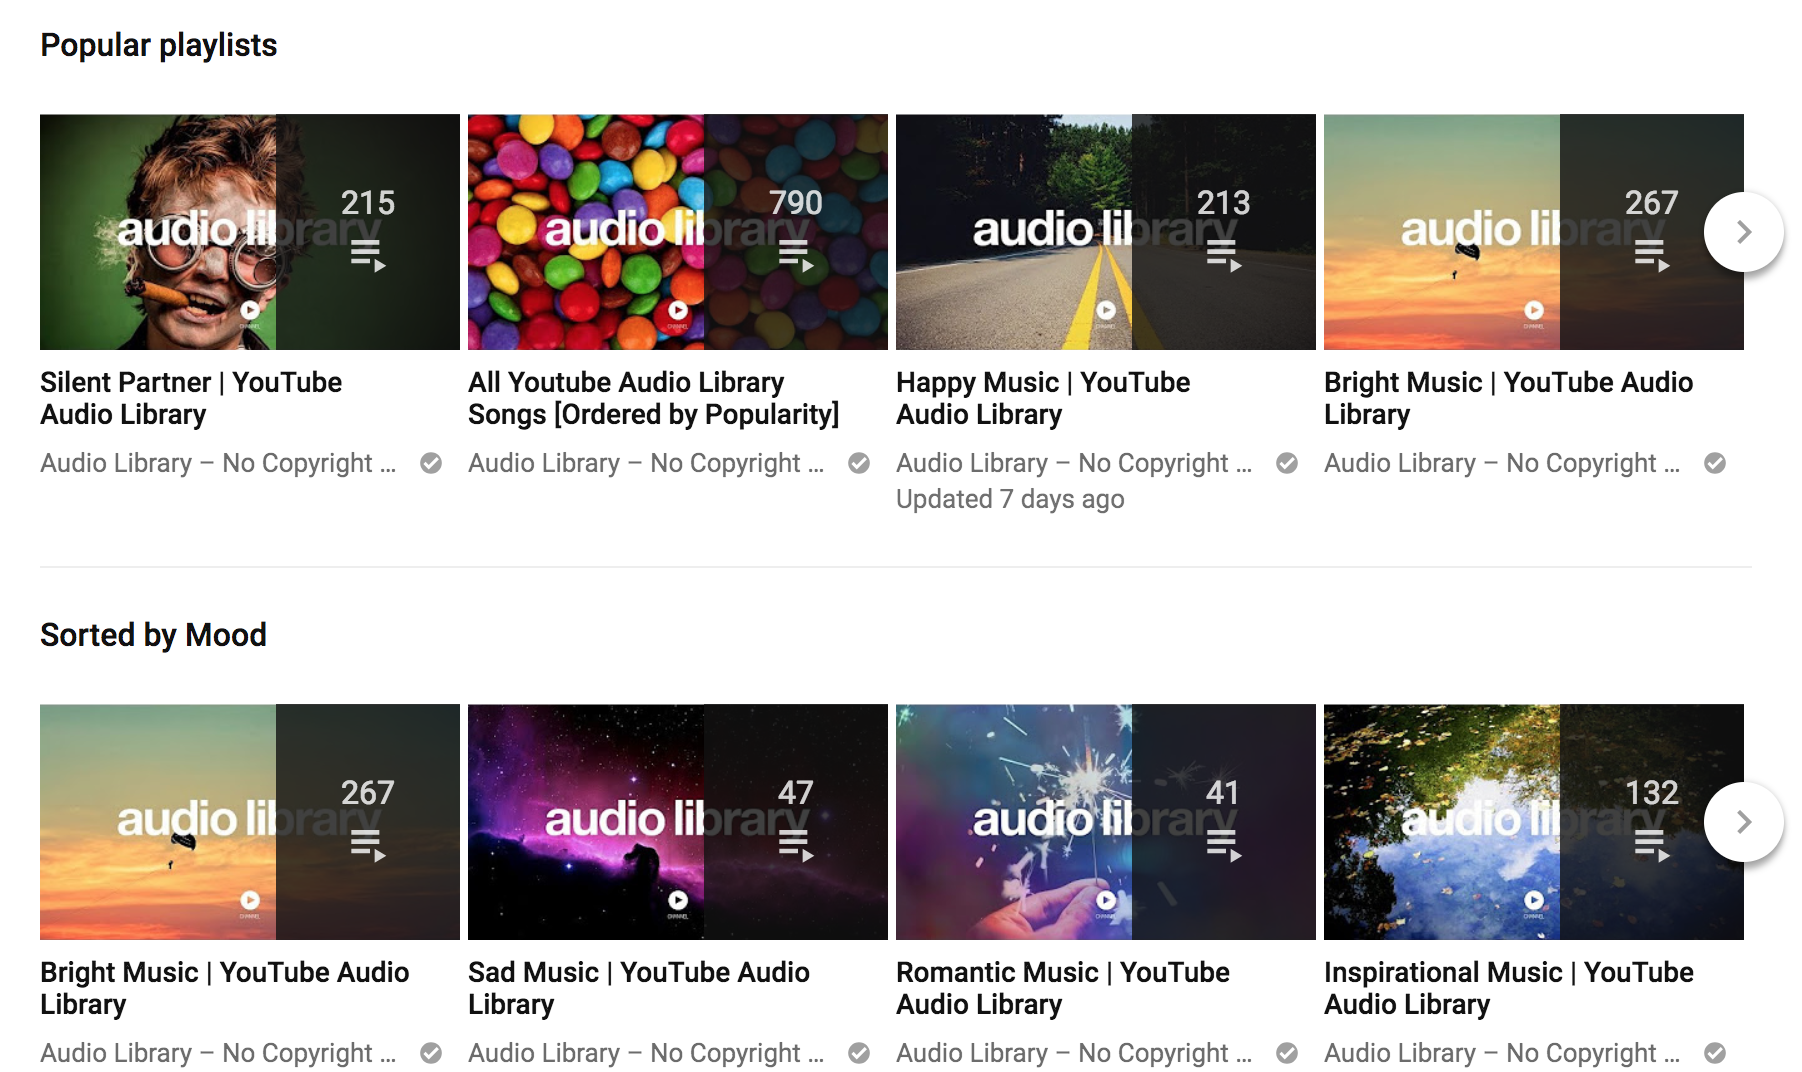 audio-library-non-copyrighted-music.png